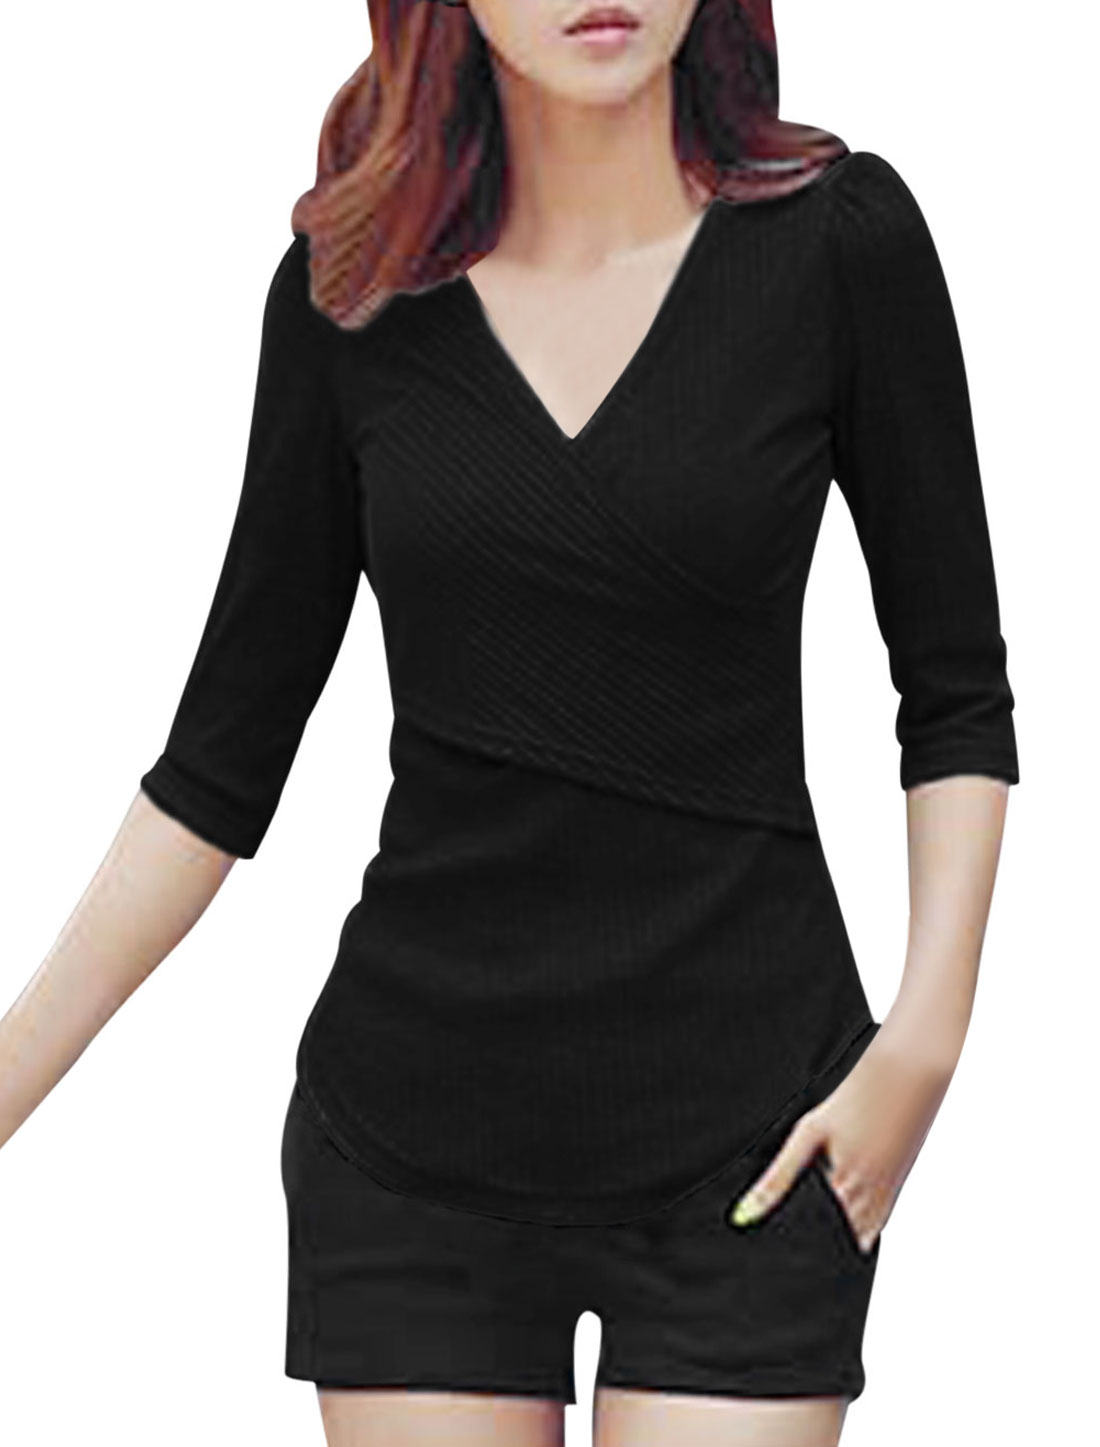 Women Crossover V-neck Half Sleeves Slim Fit Shirt Black M